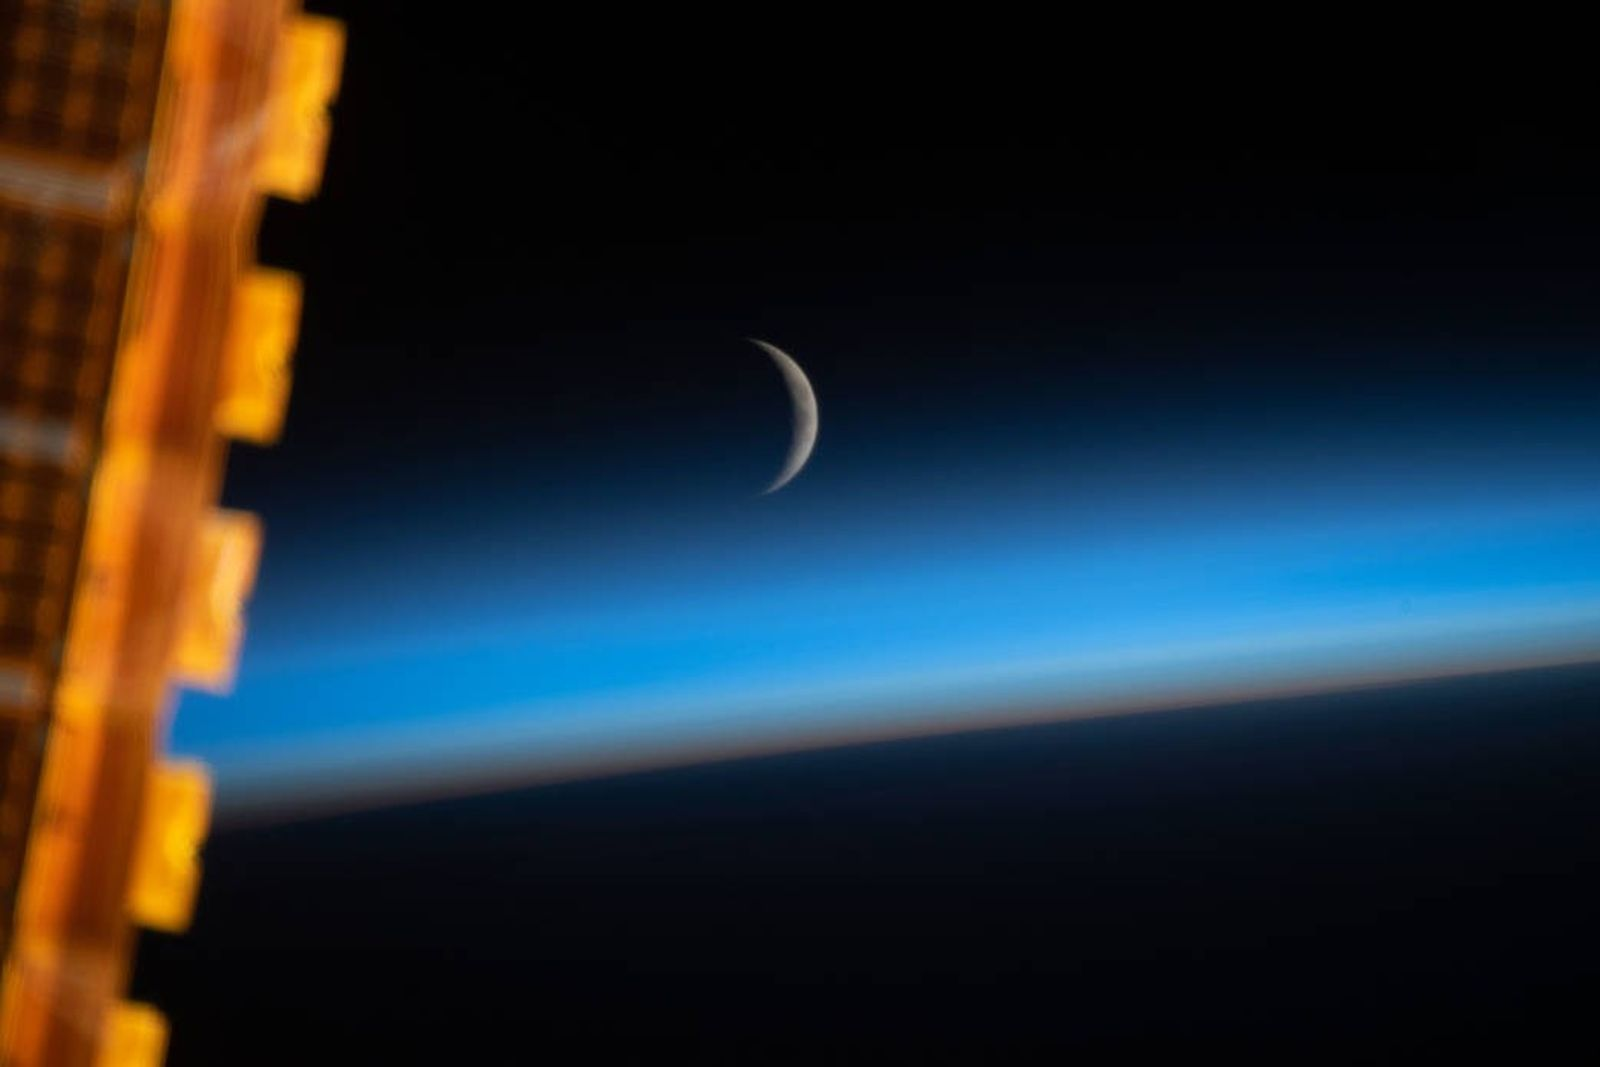 Space pictures of the Month: Moon from orbit and stars' fiery birth